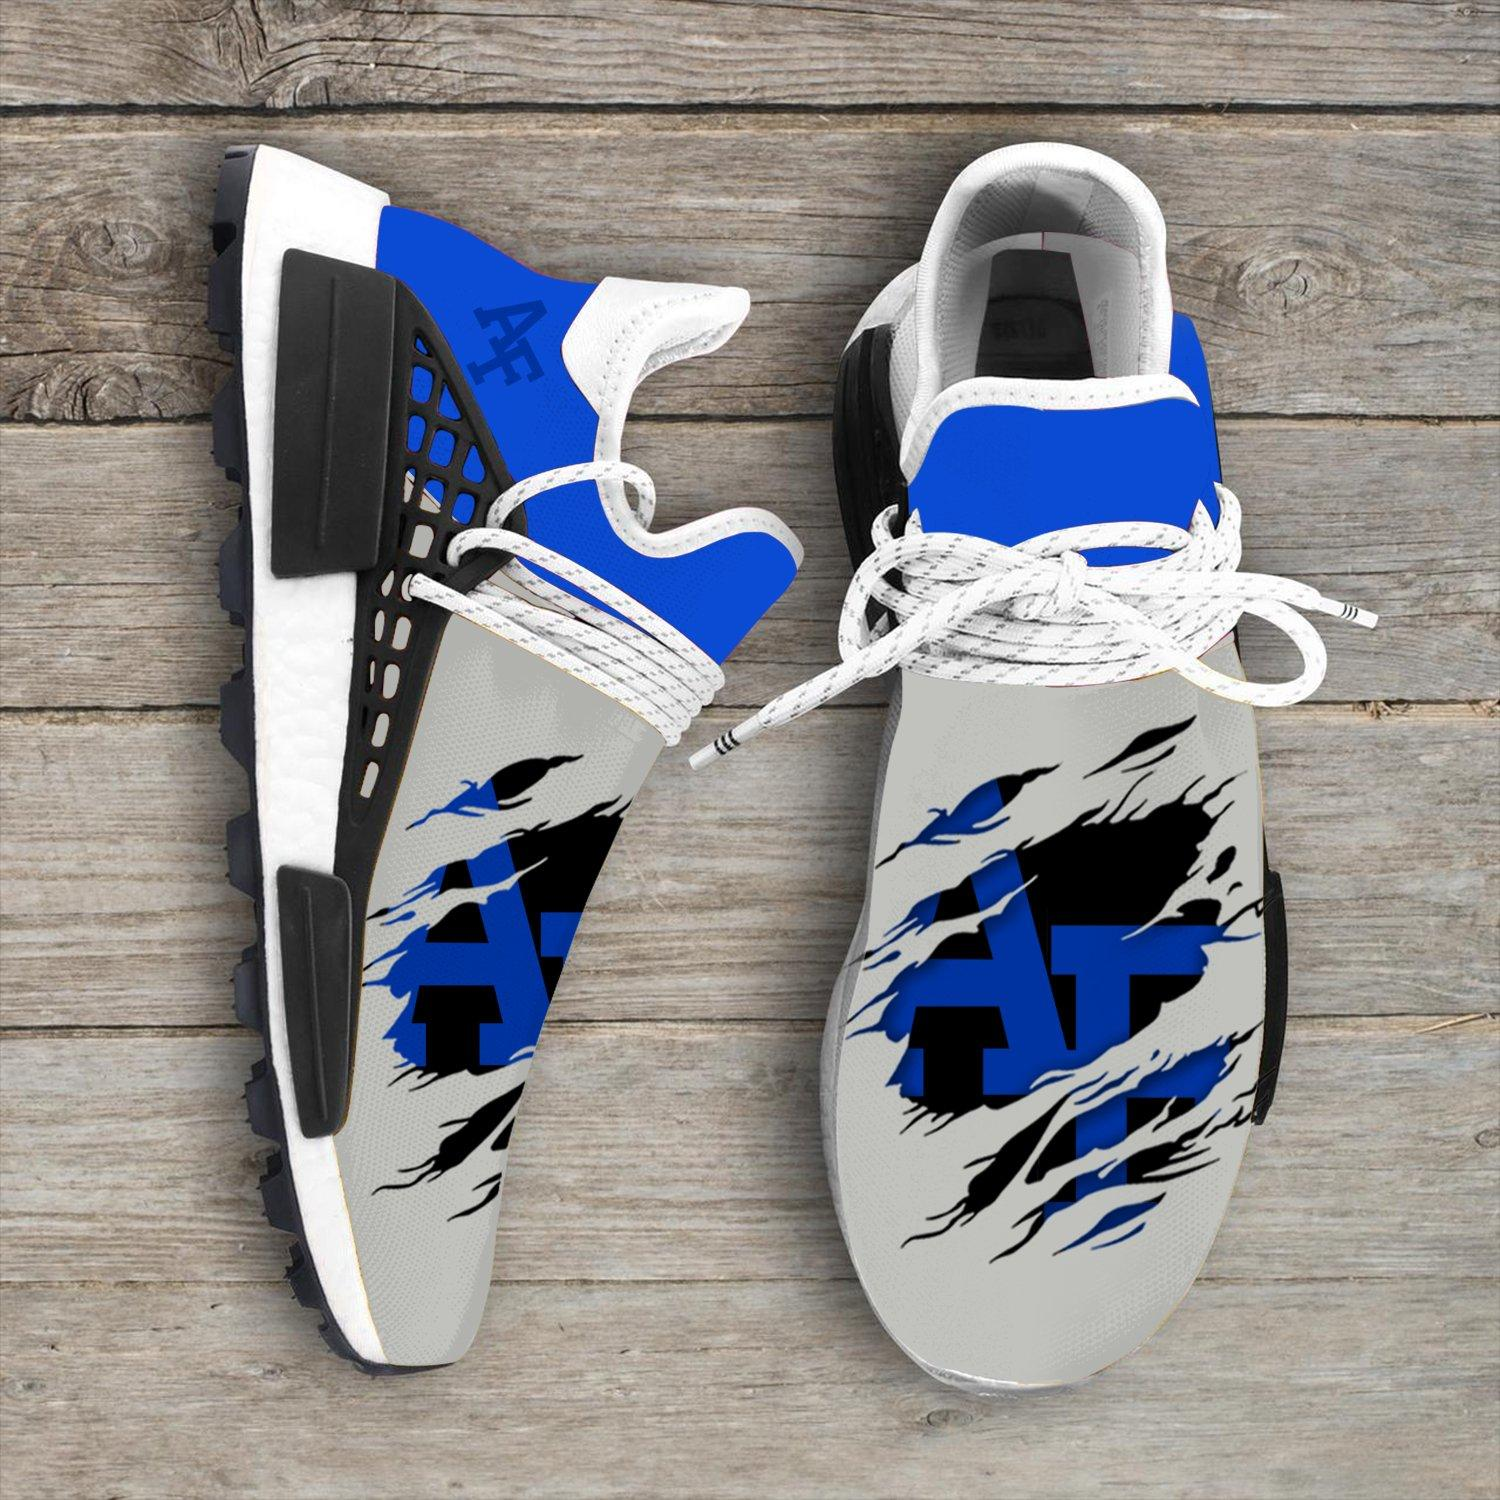 Air Force Falcons NCAA Sport Teams NMD Human Race Sneakers Shoes 2020